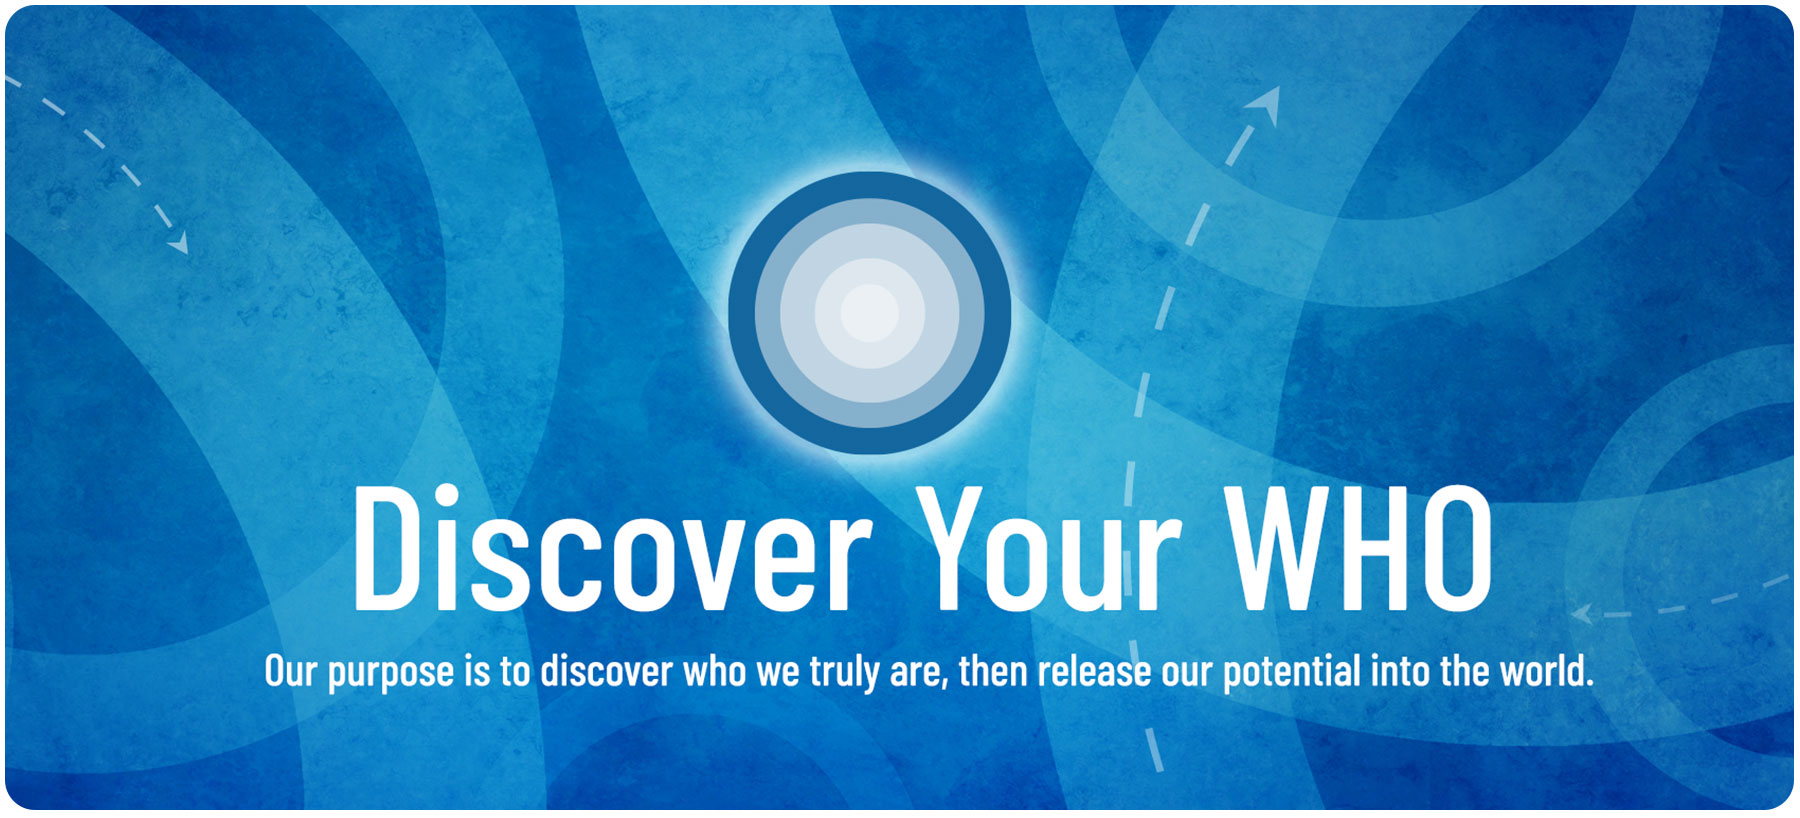 Discover Your WHO